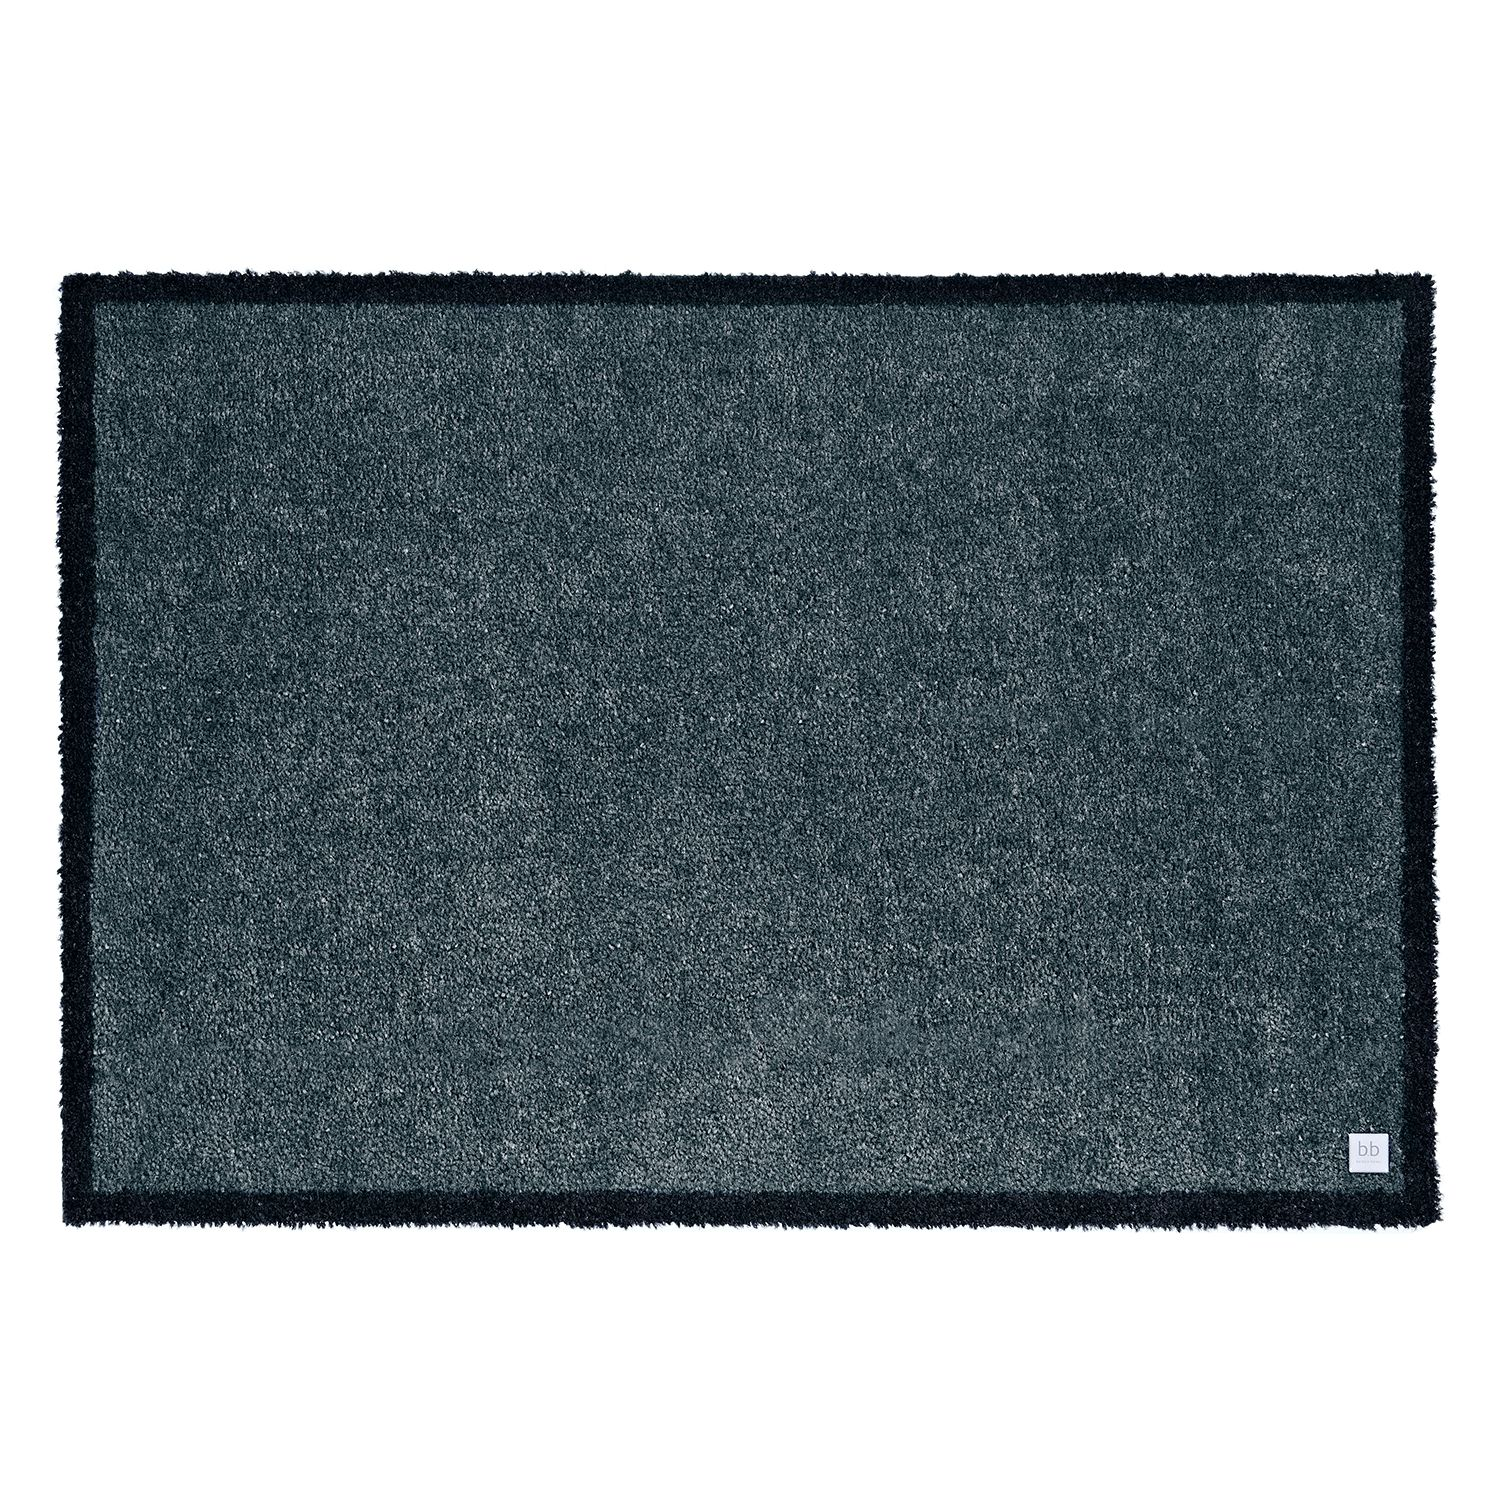 Tappetino Touch - Grigio - 50 x 70 cm, barbara becker home passion